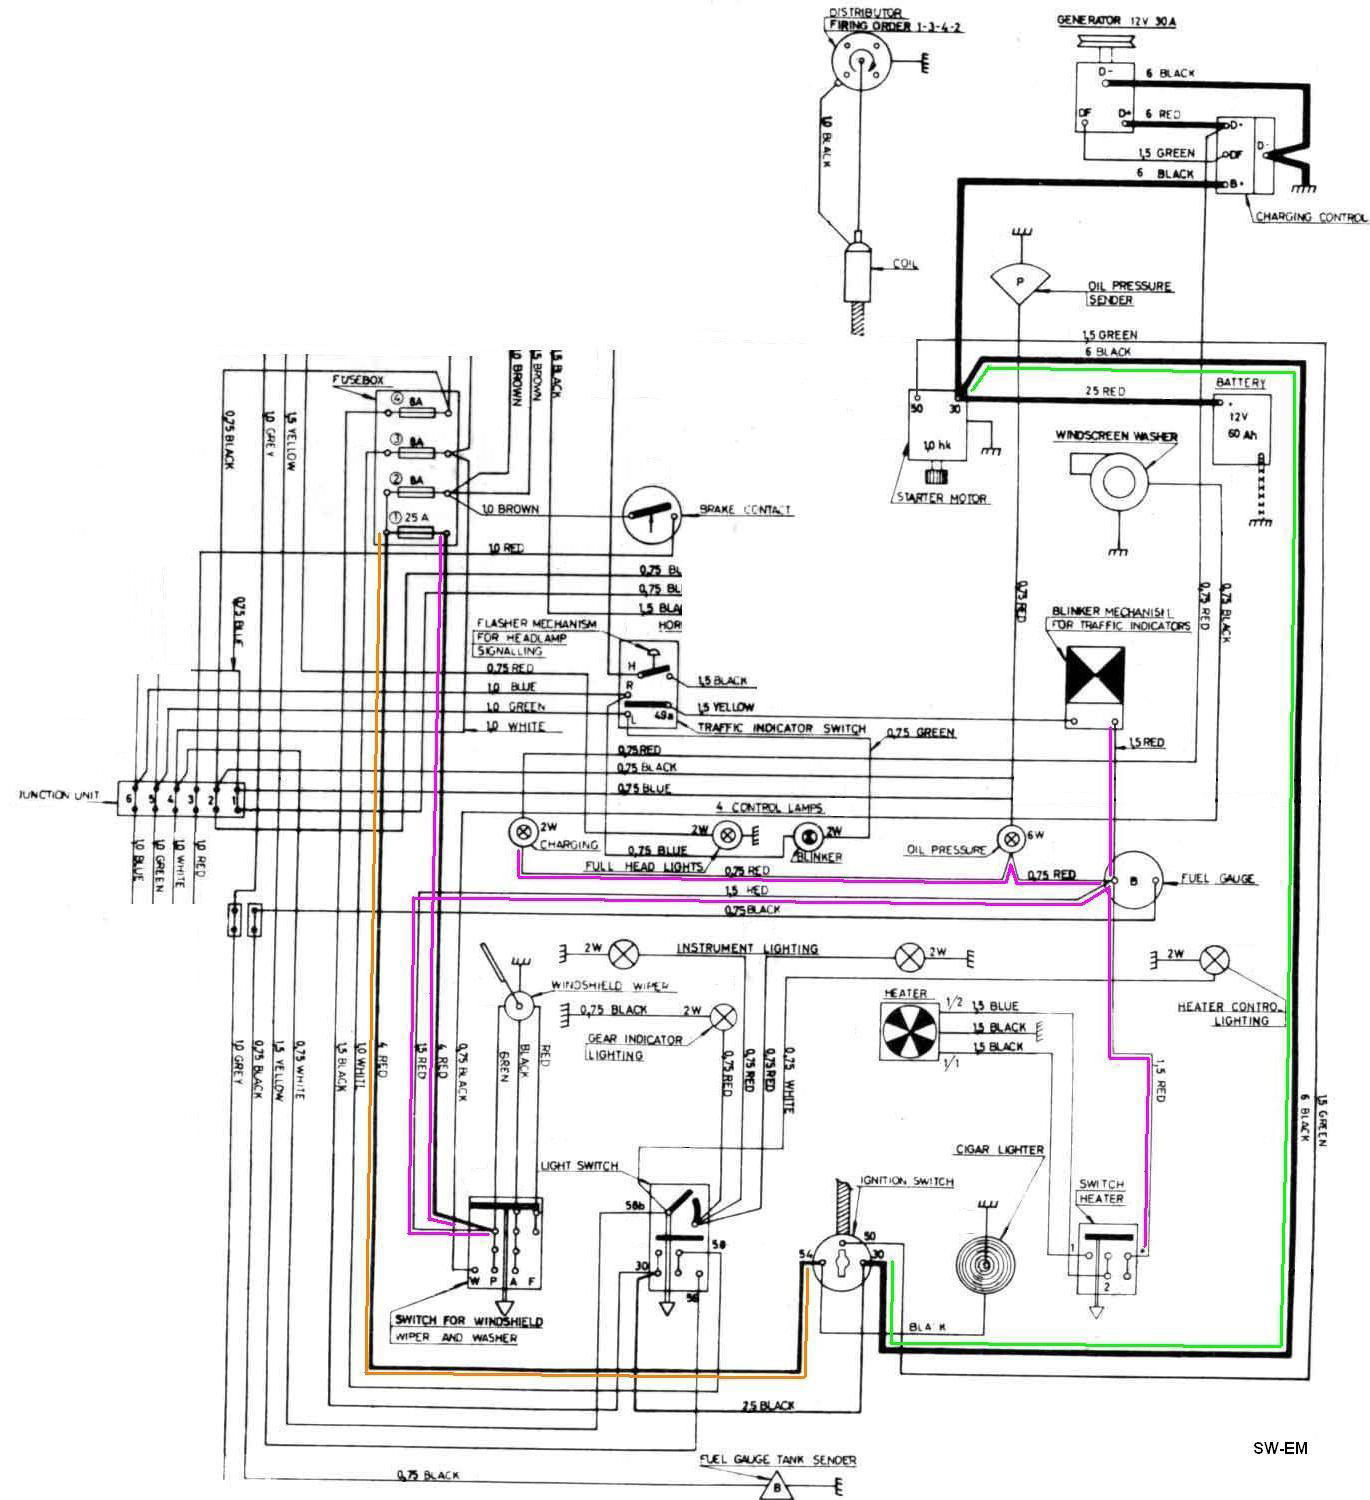 IGN SW wiring diag 122 markup 1800 ignition wiring swedish vs british design volvo penta industrial engine wiring diagram at honlapkeszites.co